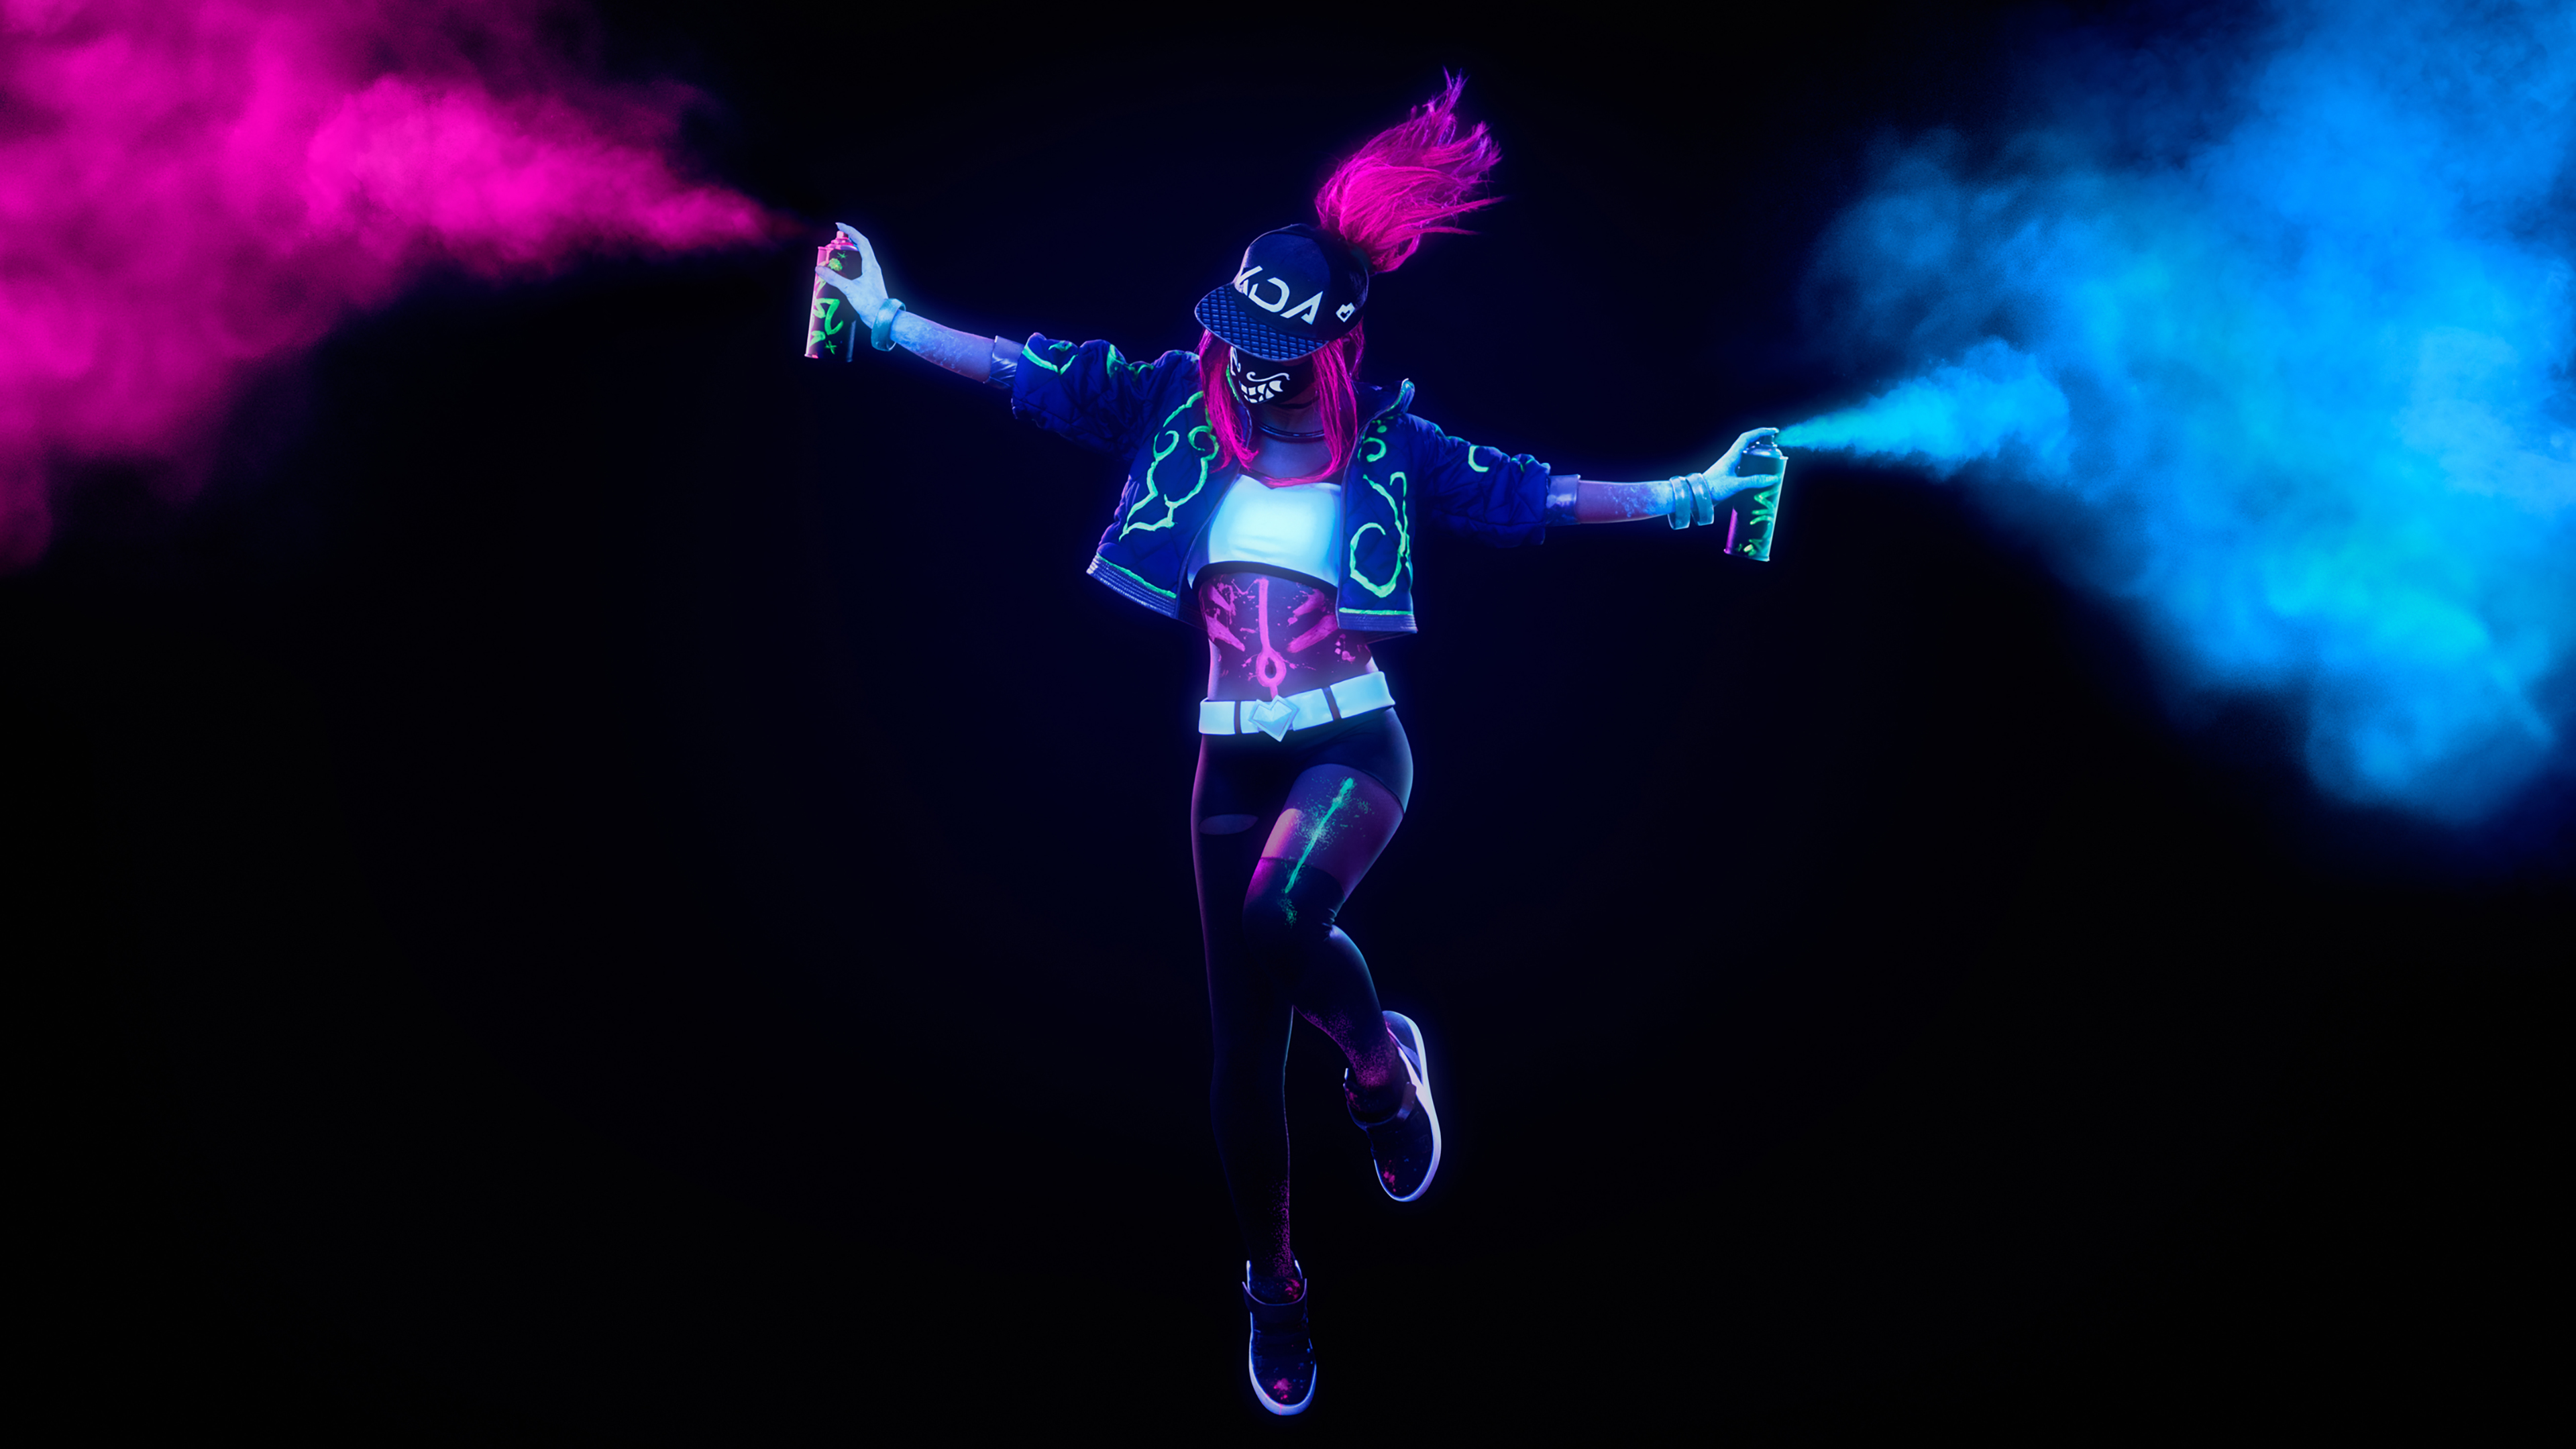 Kda Akali League Of Legends Neon Cosplay 4k Kda Akali Wallpaper 4k 3840x2160 Wallpaper Teahub Io